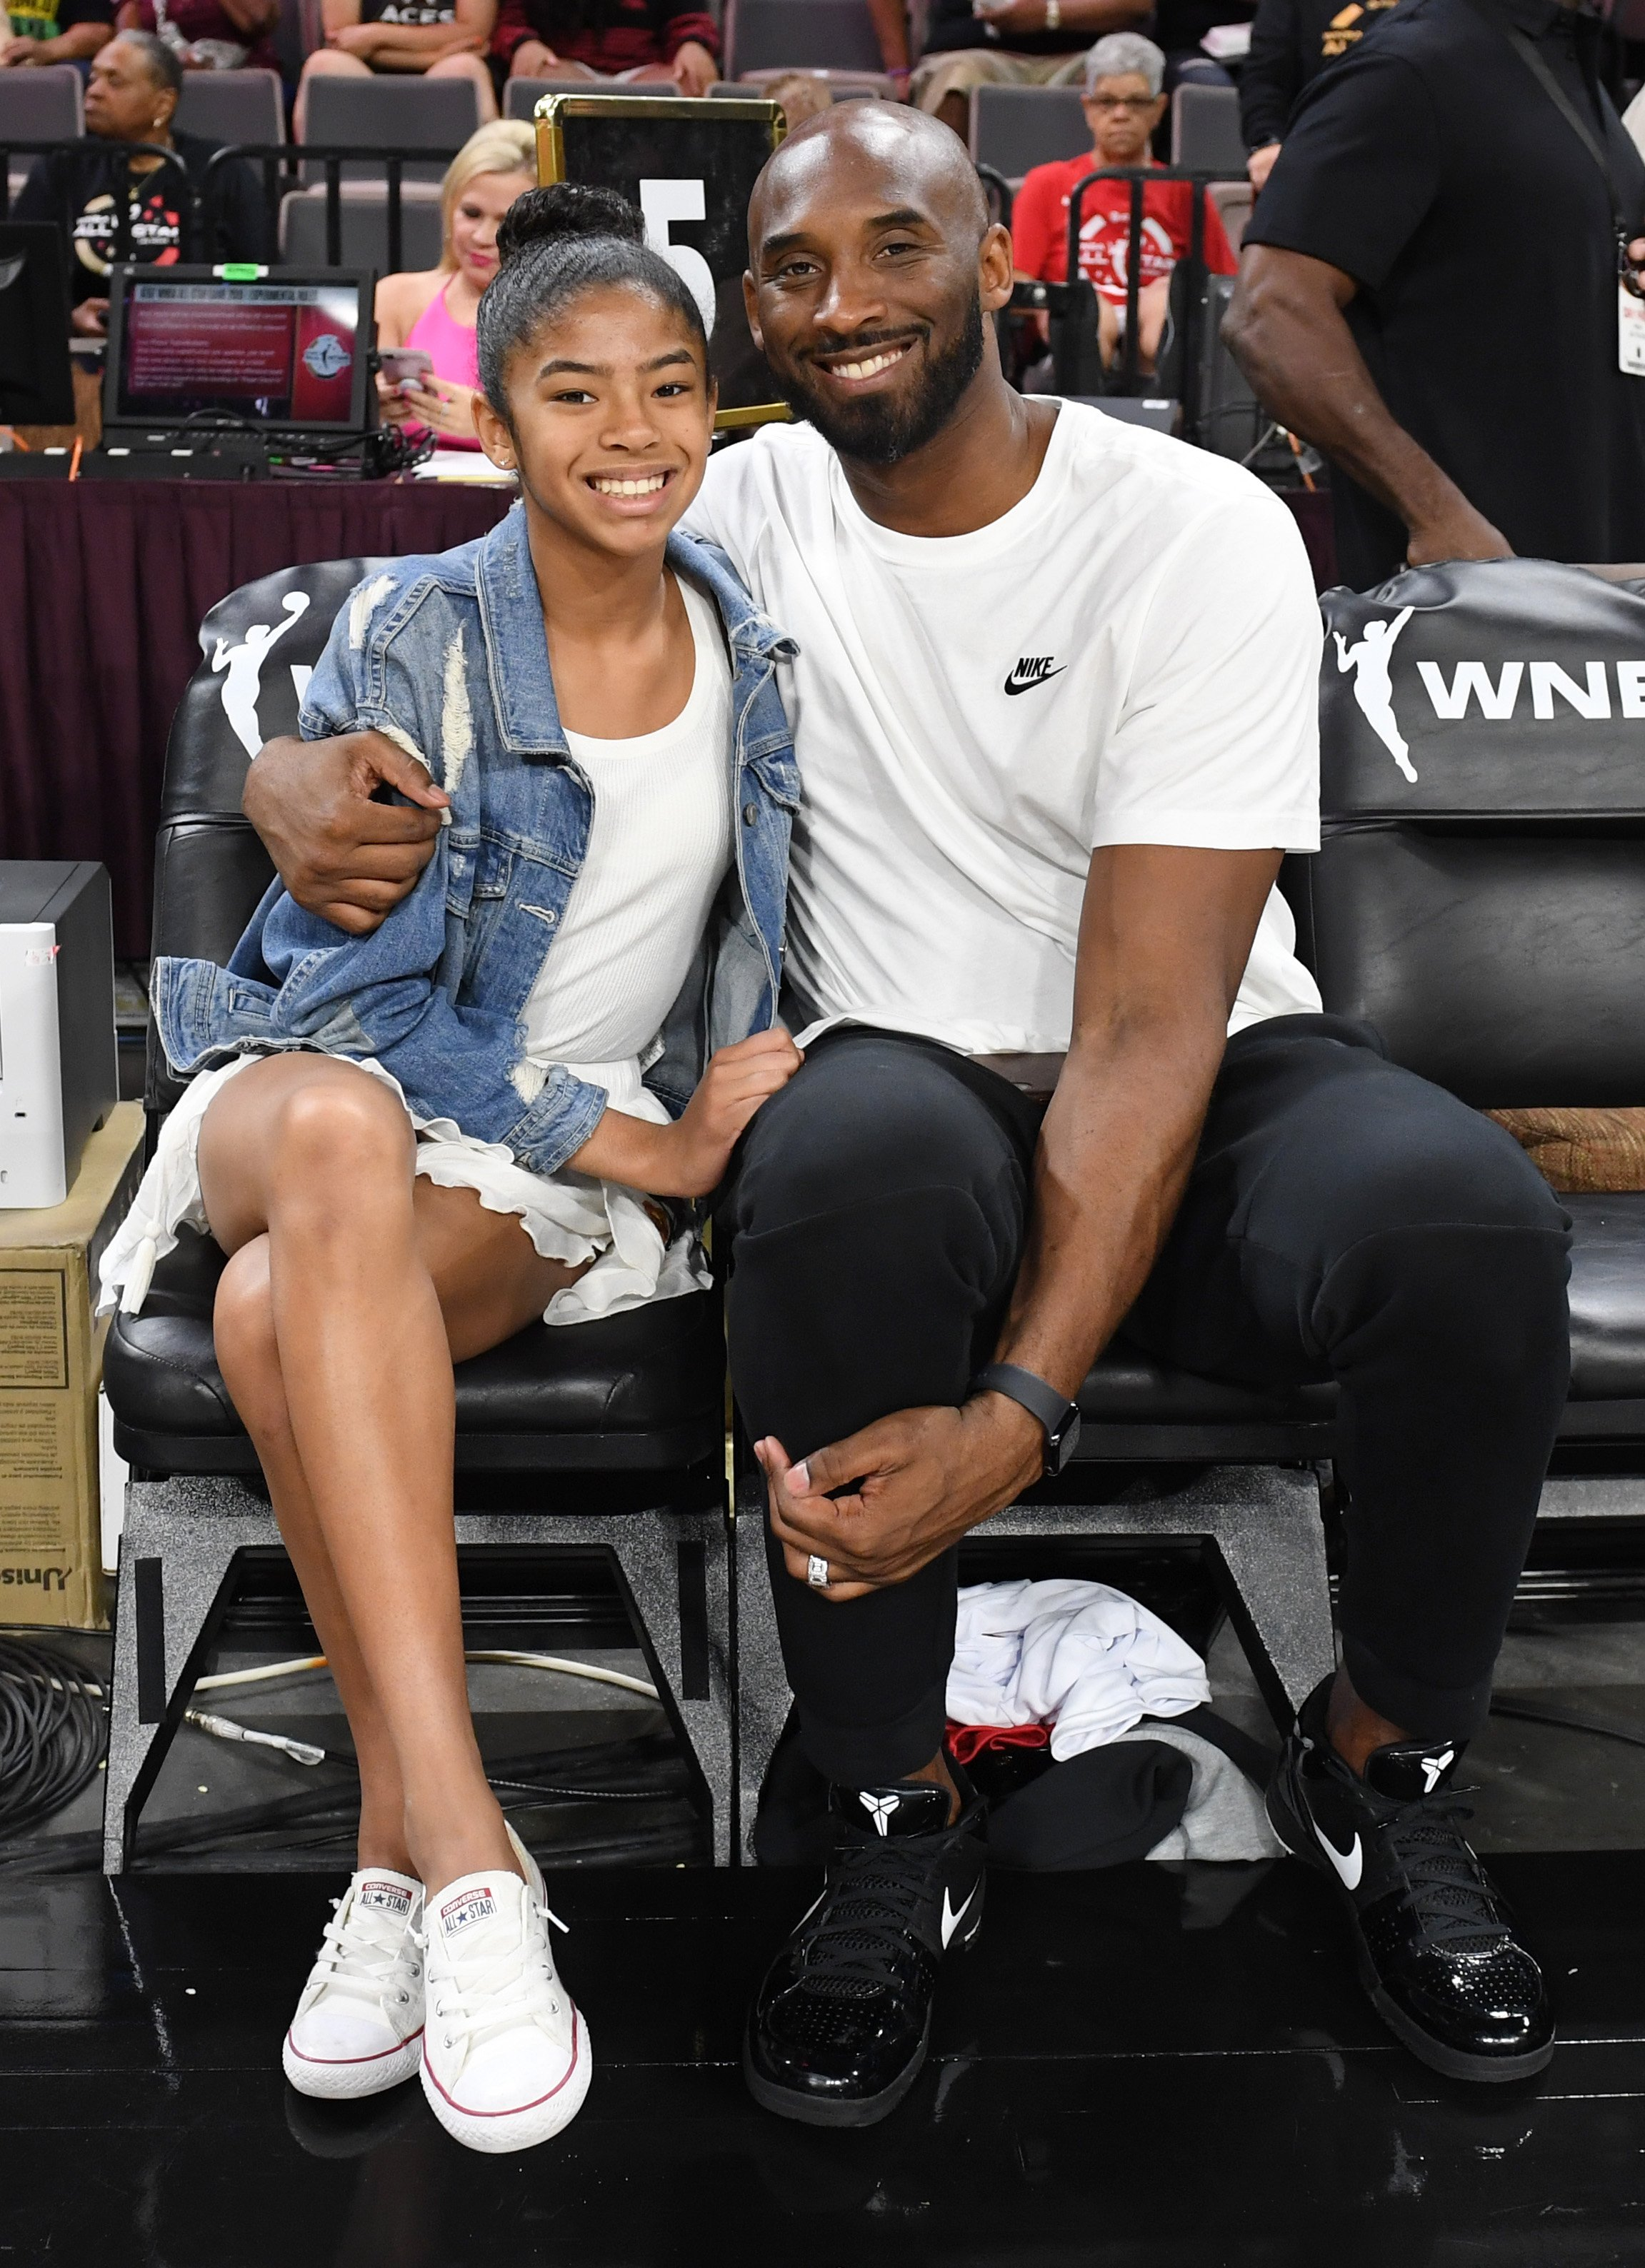 Gianna Bryant and her father, former NBA player Kobe Bryant, attend the WNBA All-Star Game 2019 at the Mandalay Bay Events Center on July 27, 2019|Photo: Getty Images